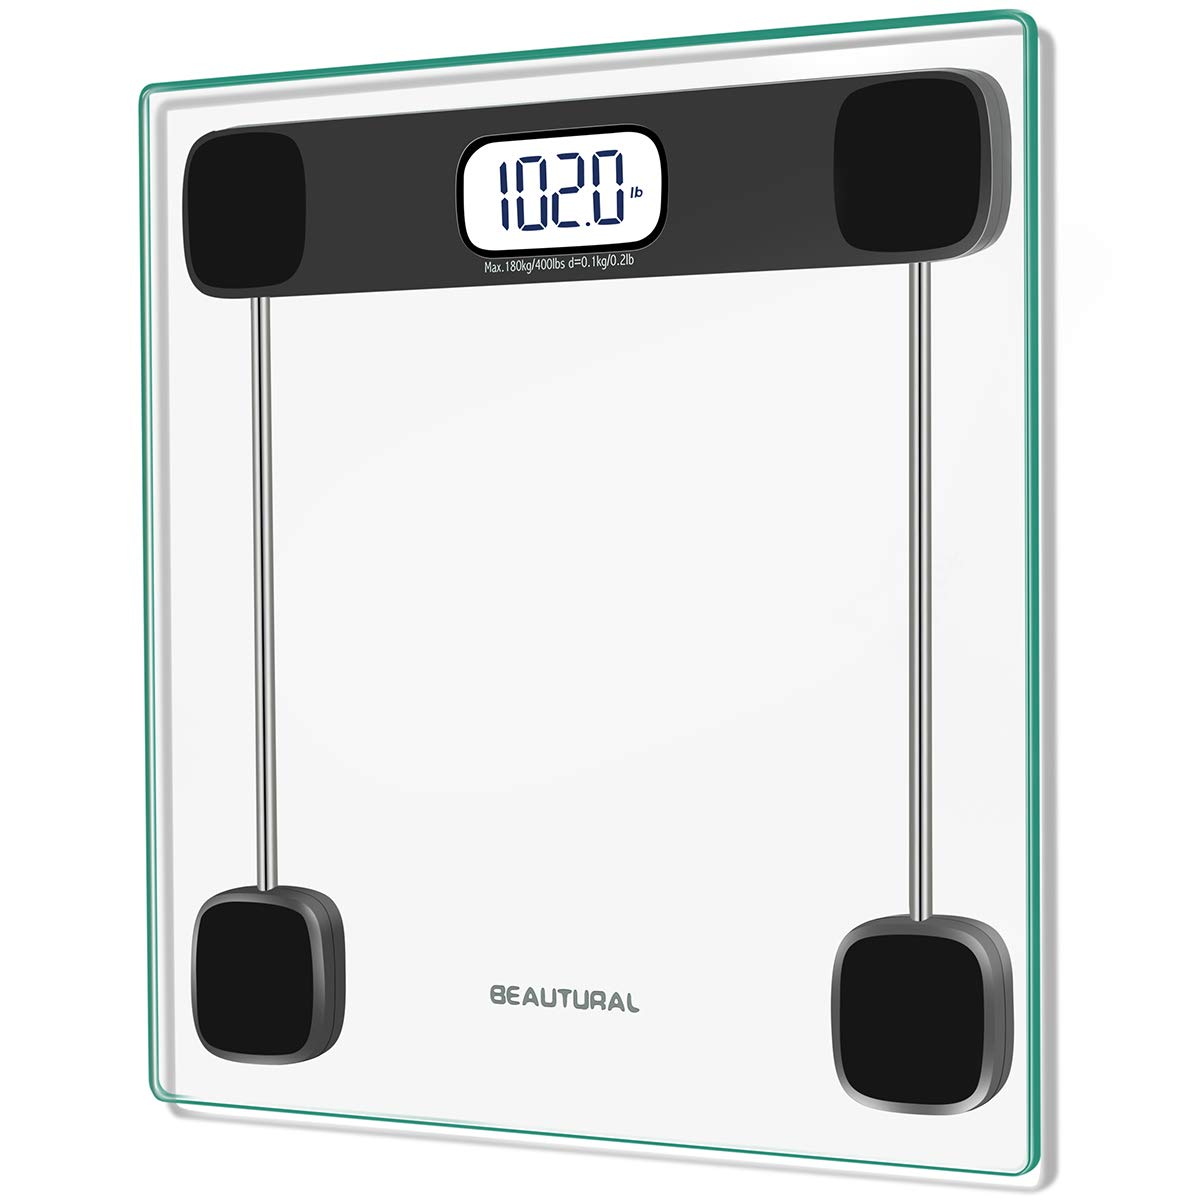 Beautural Precision Digital Body Weight Bathroom Scale with Lighted Display, Step-On Technology, 400 lb by BEAUTURAL